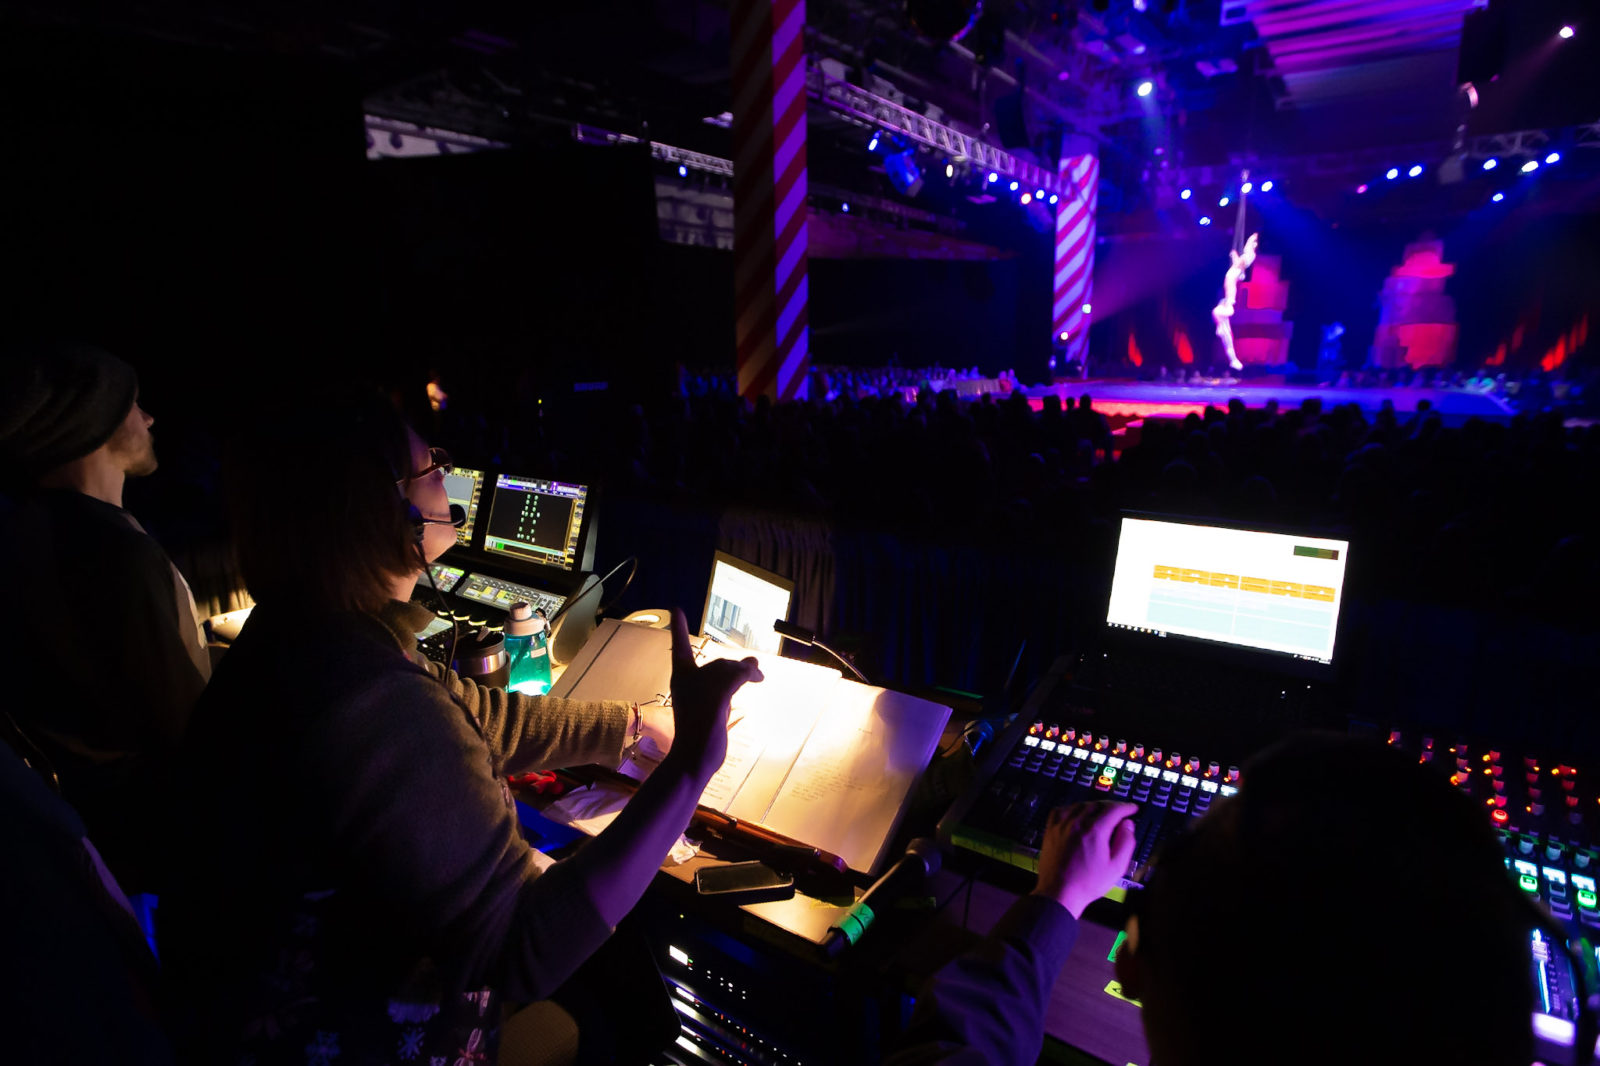 A stage manager has one finger up in standby as acrobat lower to the stage